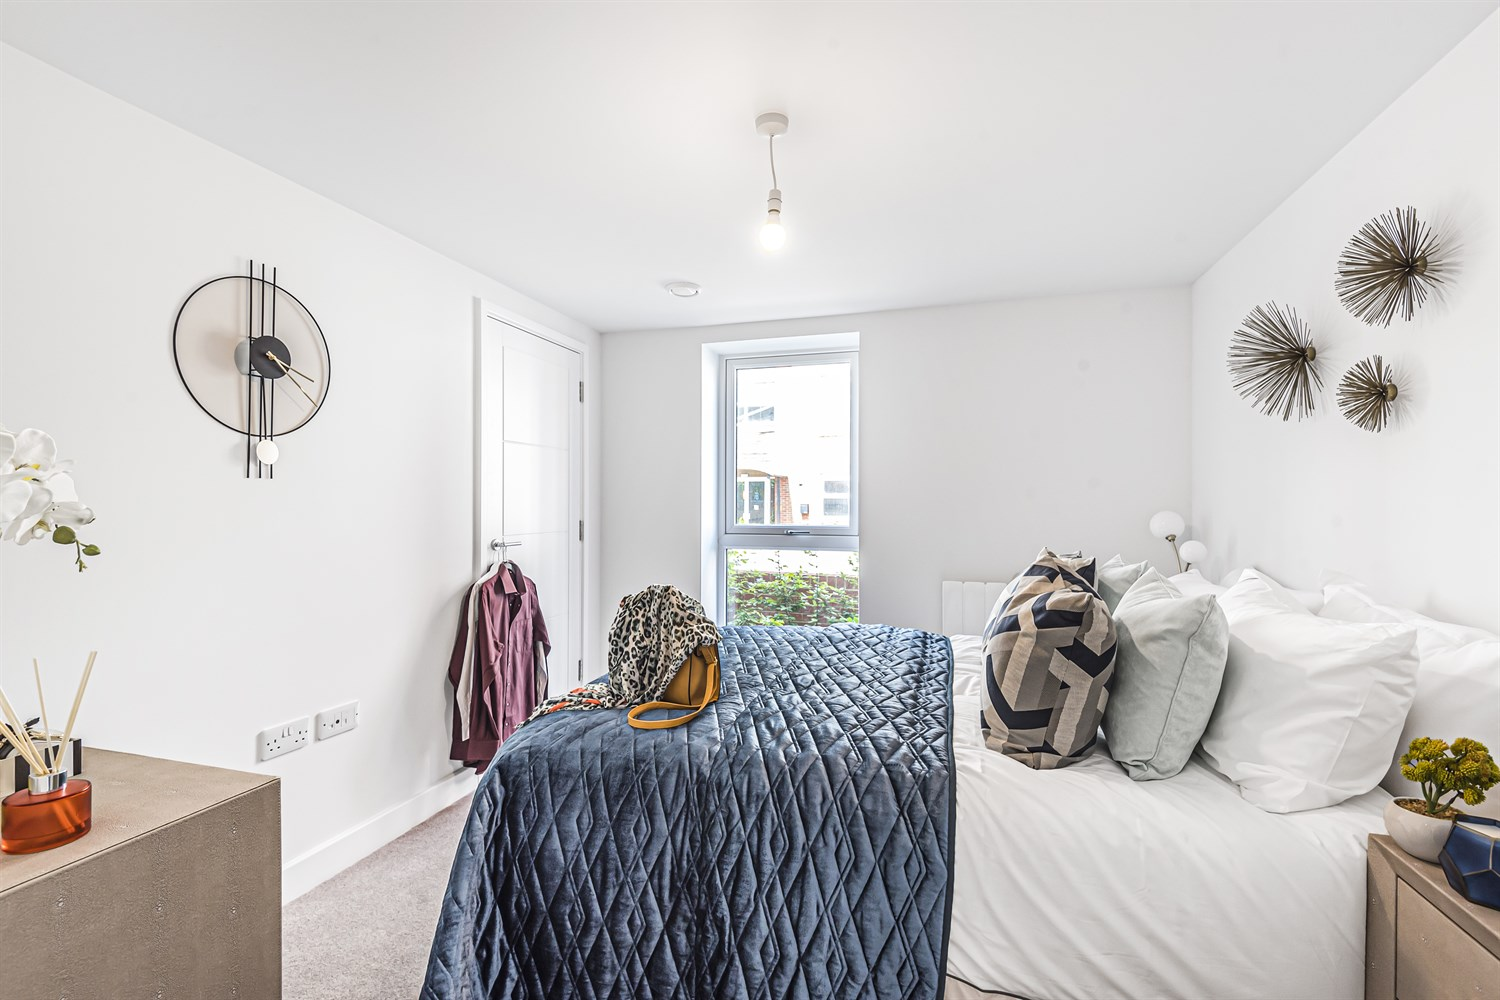 Plot 8 Sterling Square - 1 bed apartment, Silver Street, Reading, RG1 2SE